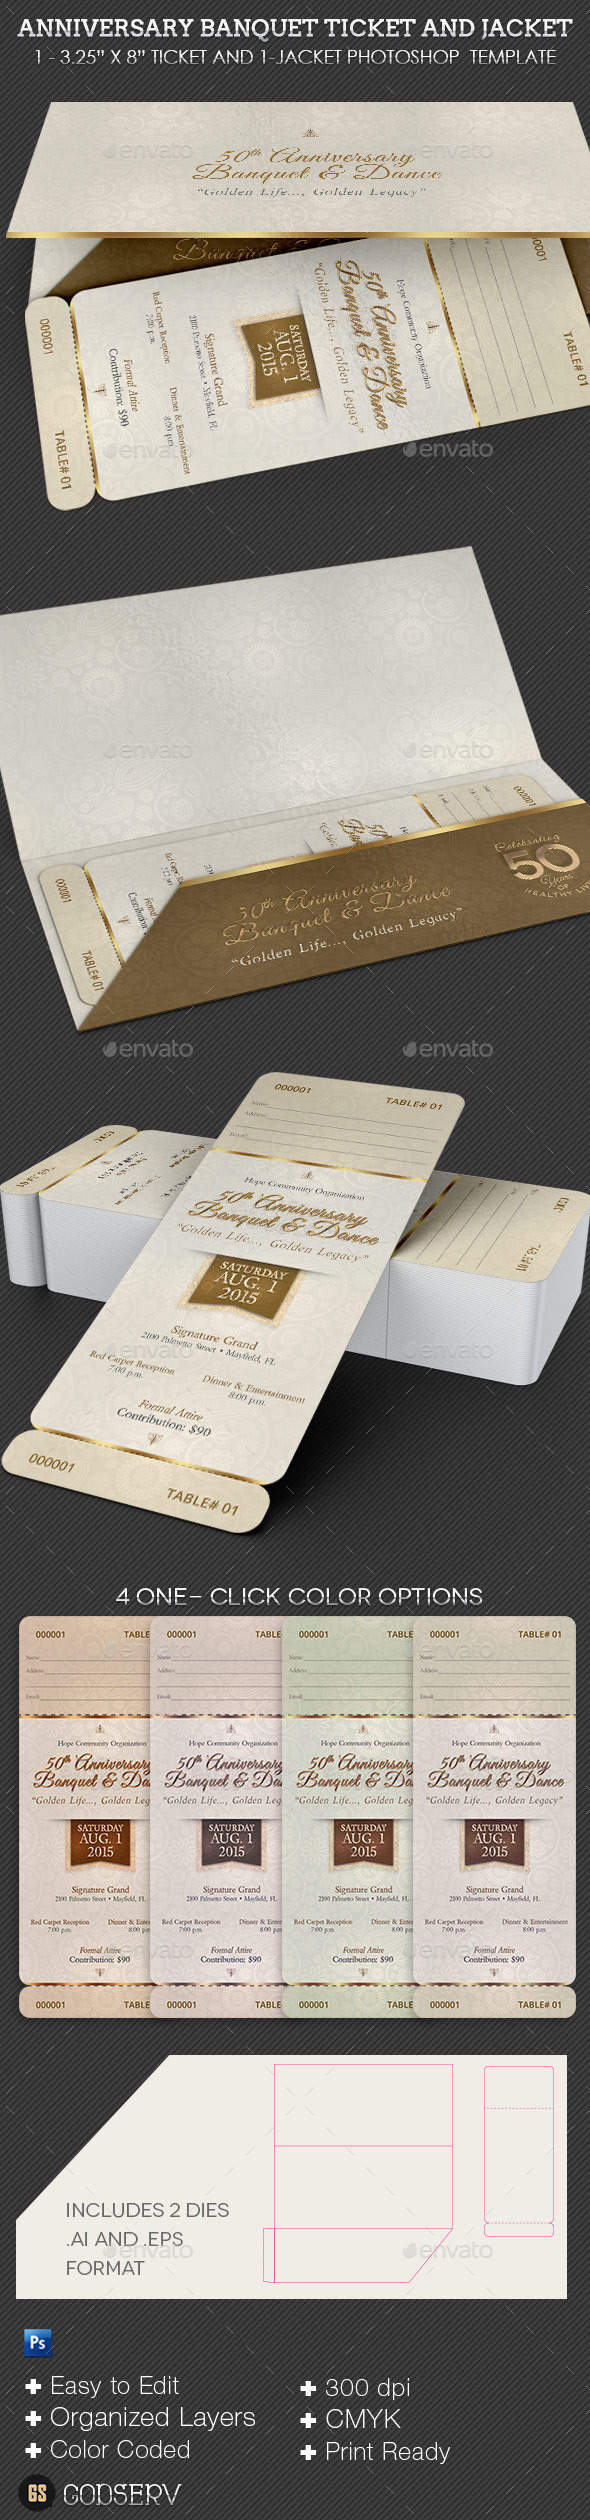 Anniversary Banquet Ticket Plus Jacket Template - Miscellaneous Print Templates